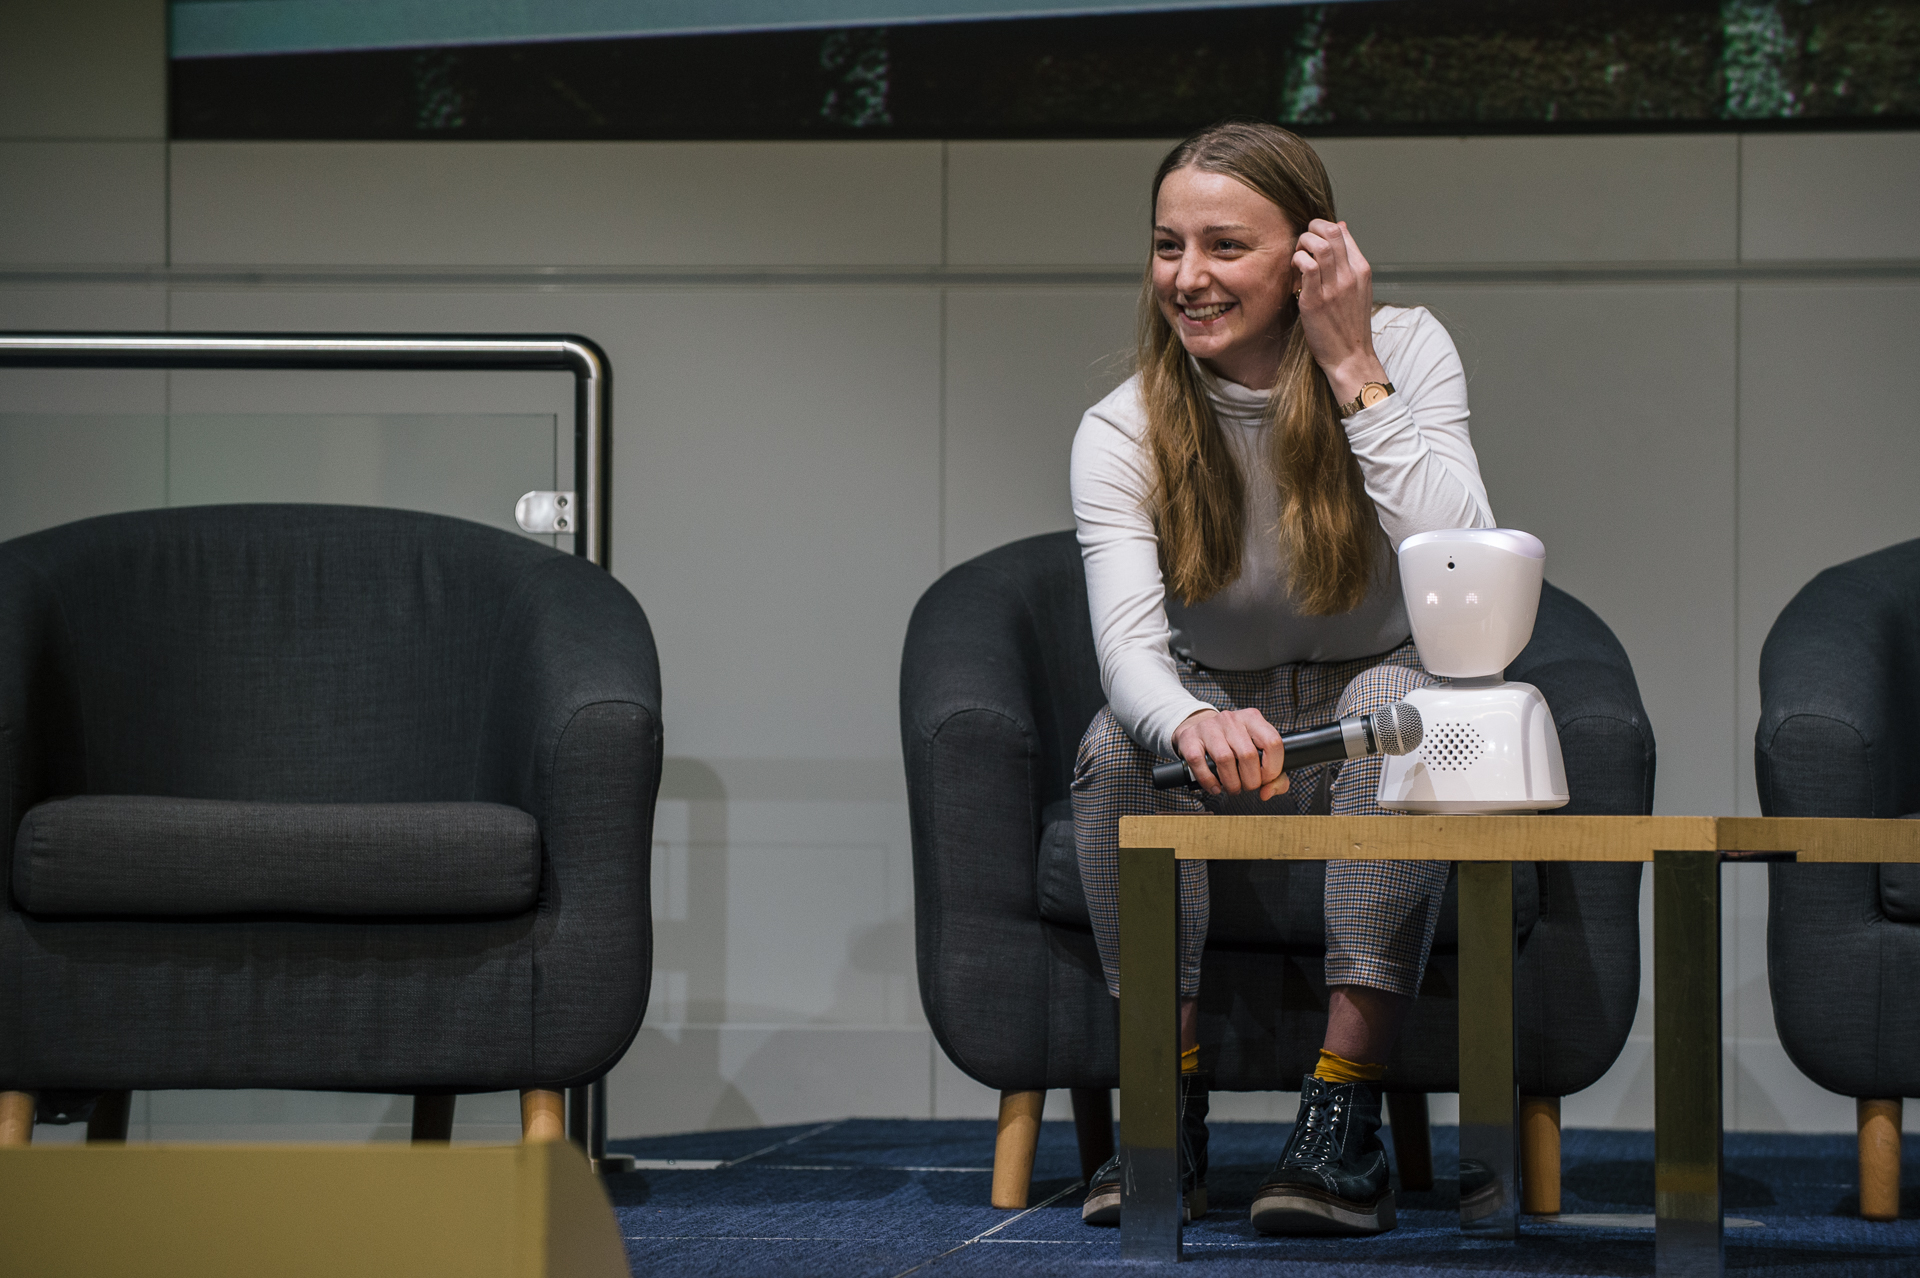 Picture of a smiling girl with the white AV1 robot